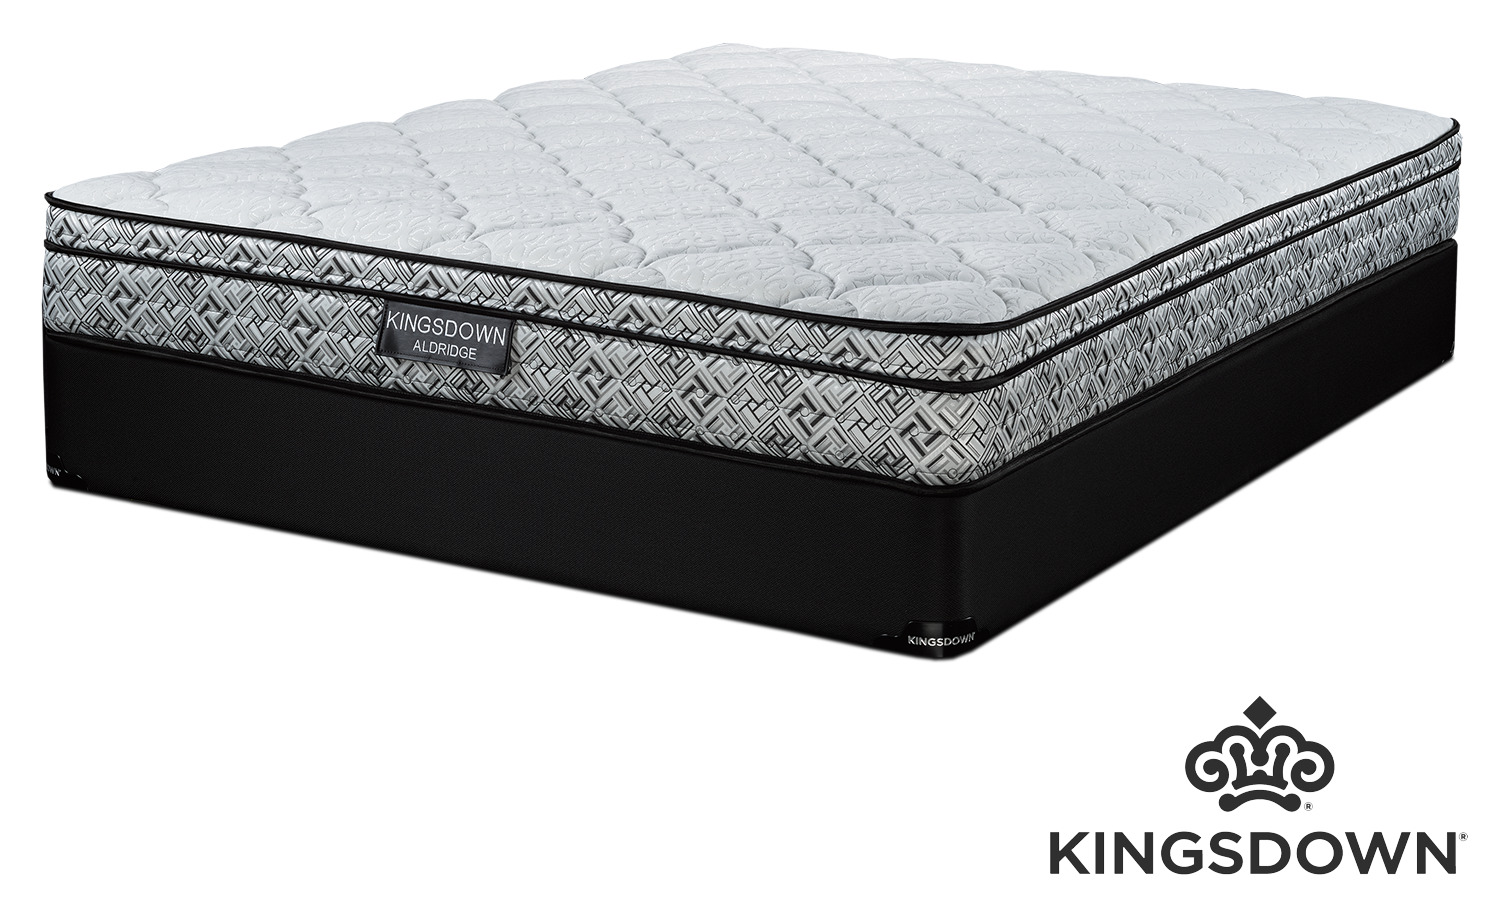 Kingsdown Aldridge Cushion Firm Full Mattress and Boxspring Set